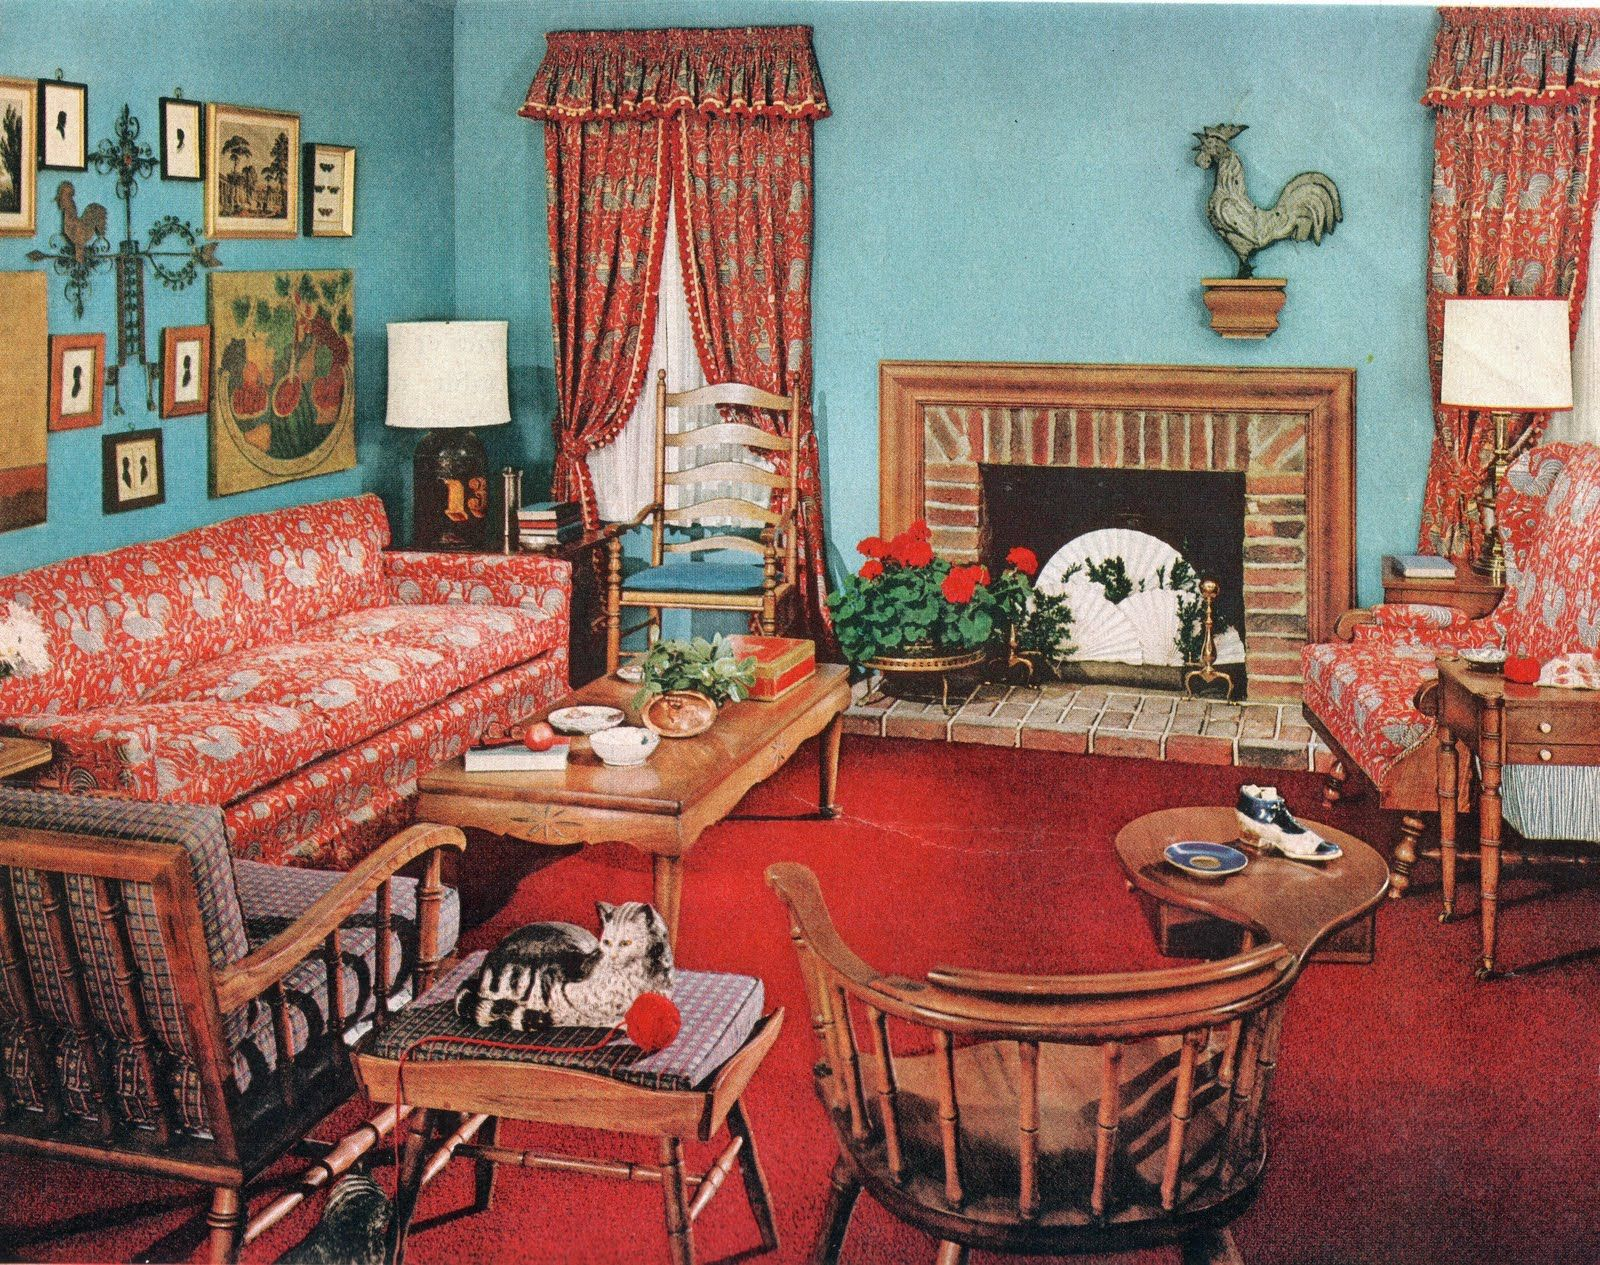 Sally Annie Magundy Early American 1940s Home Decor Bedroom